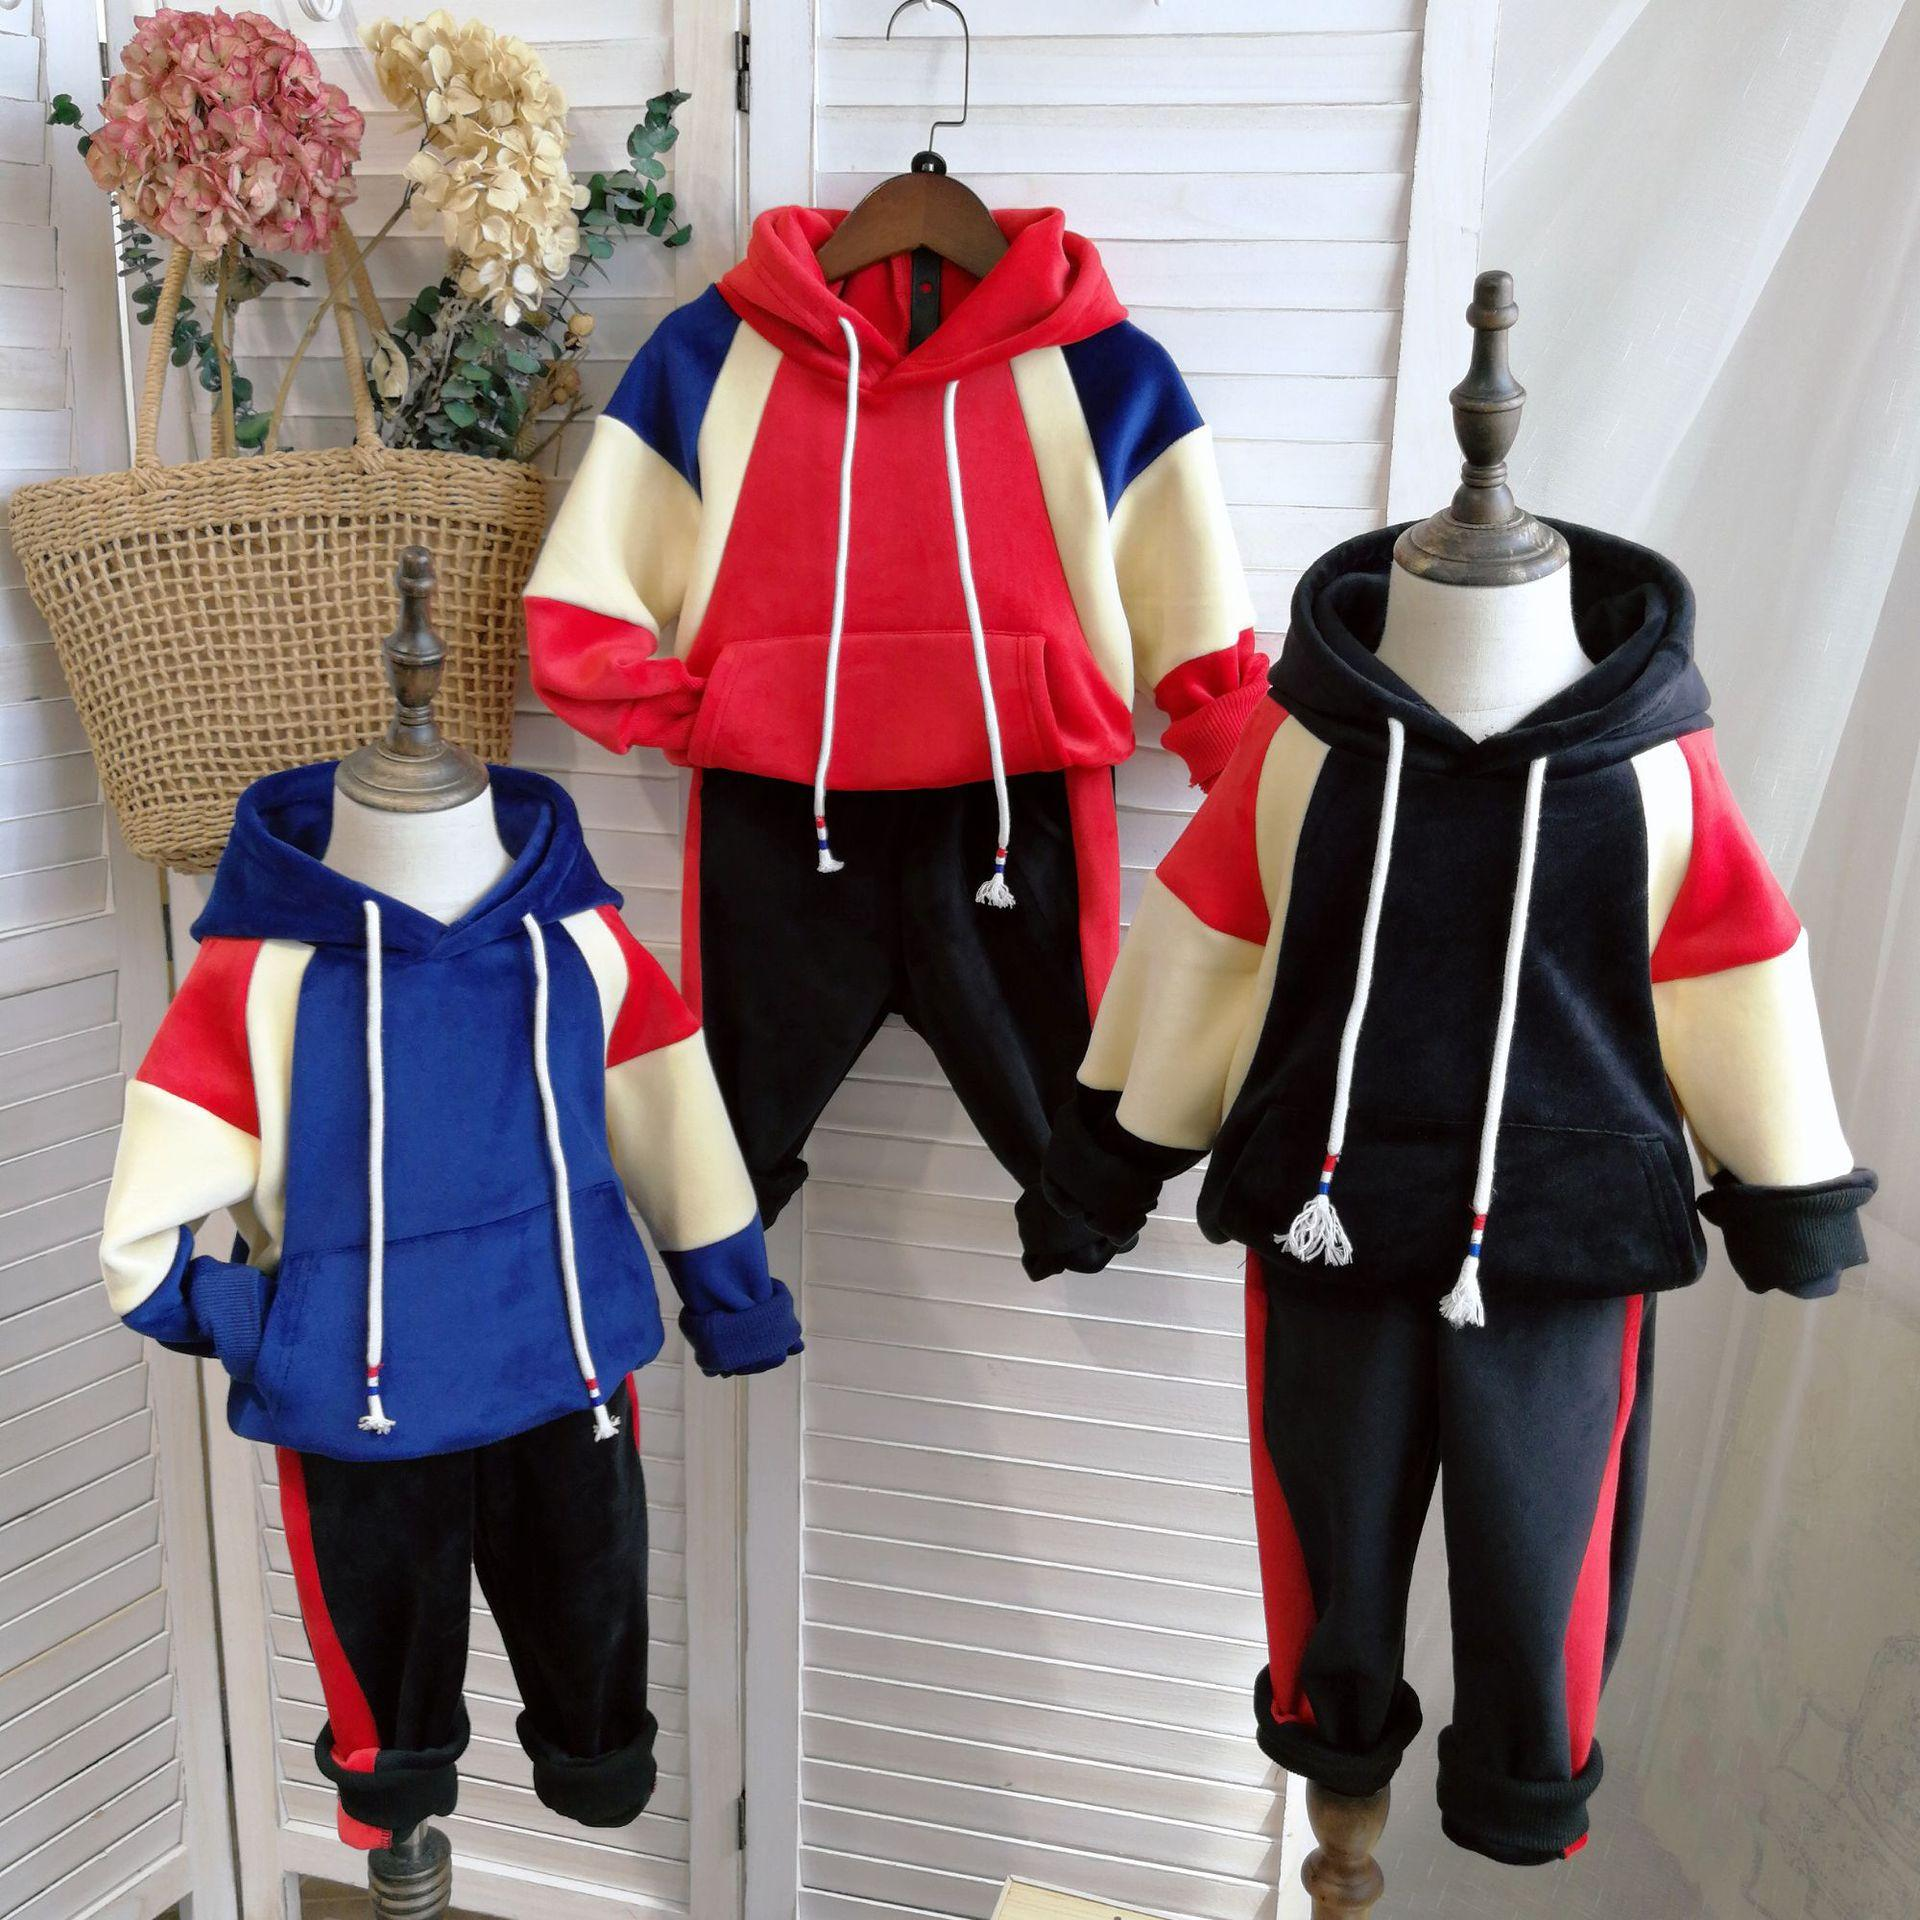 ab32442f2 2019 Baby Boy Patchwork Outfits Children Kids Hooded Hoodie Top+Pants  Autumn Velvet Suit Kids Clothing Set Home Clothing AAA1387 From  Liangjingjing_no1, ...